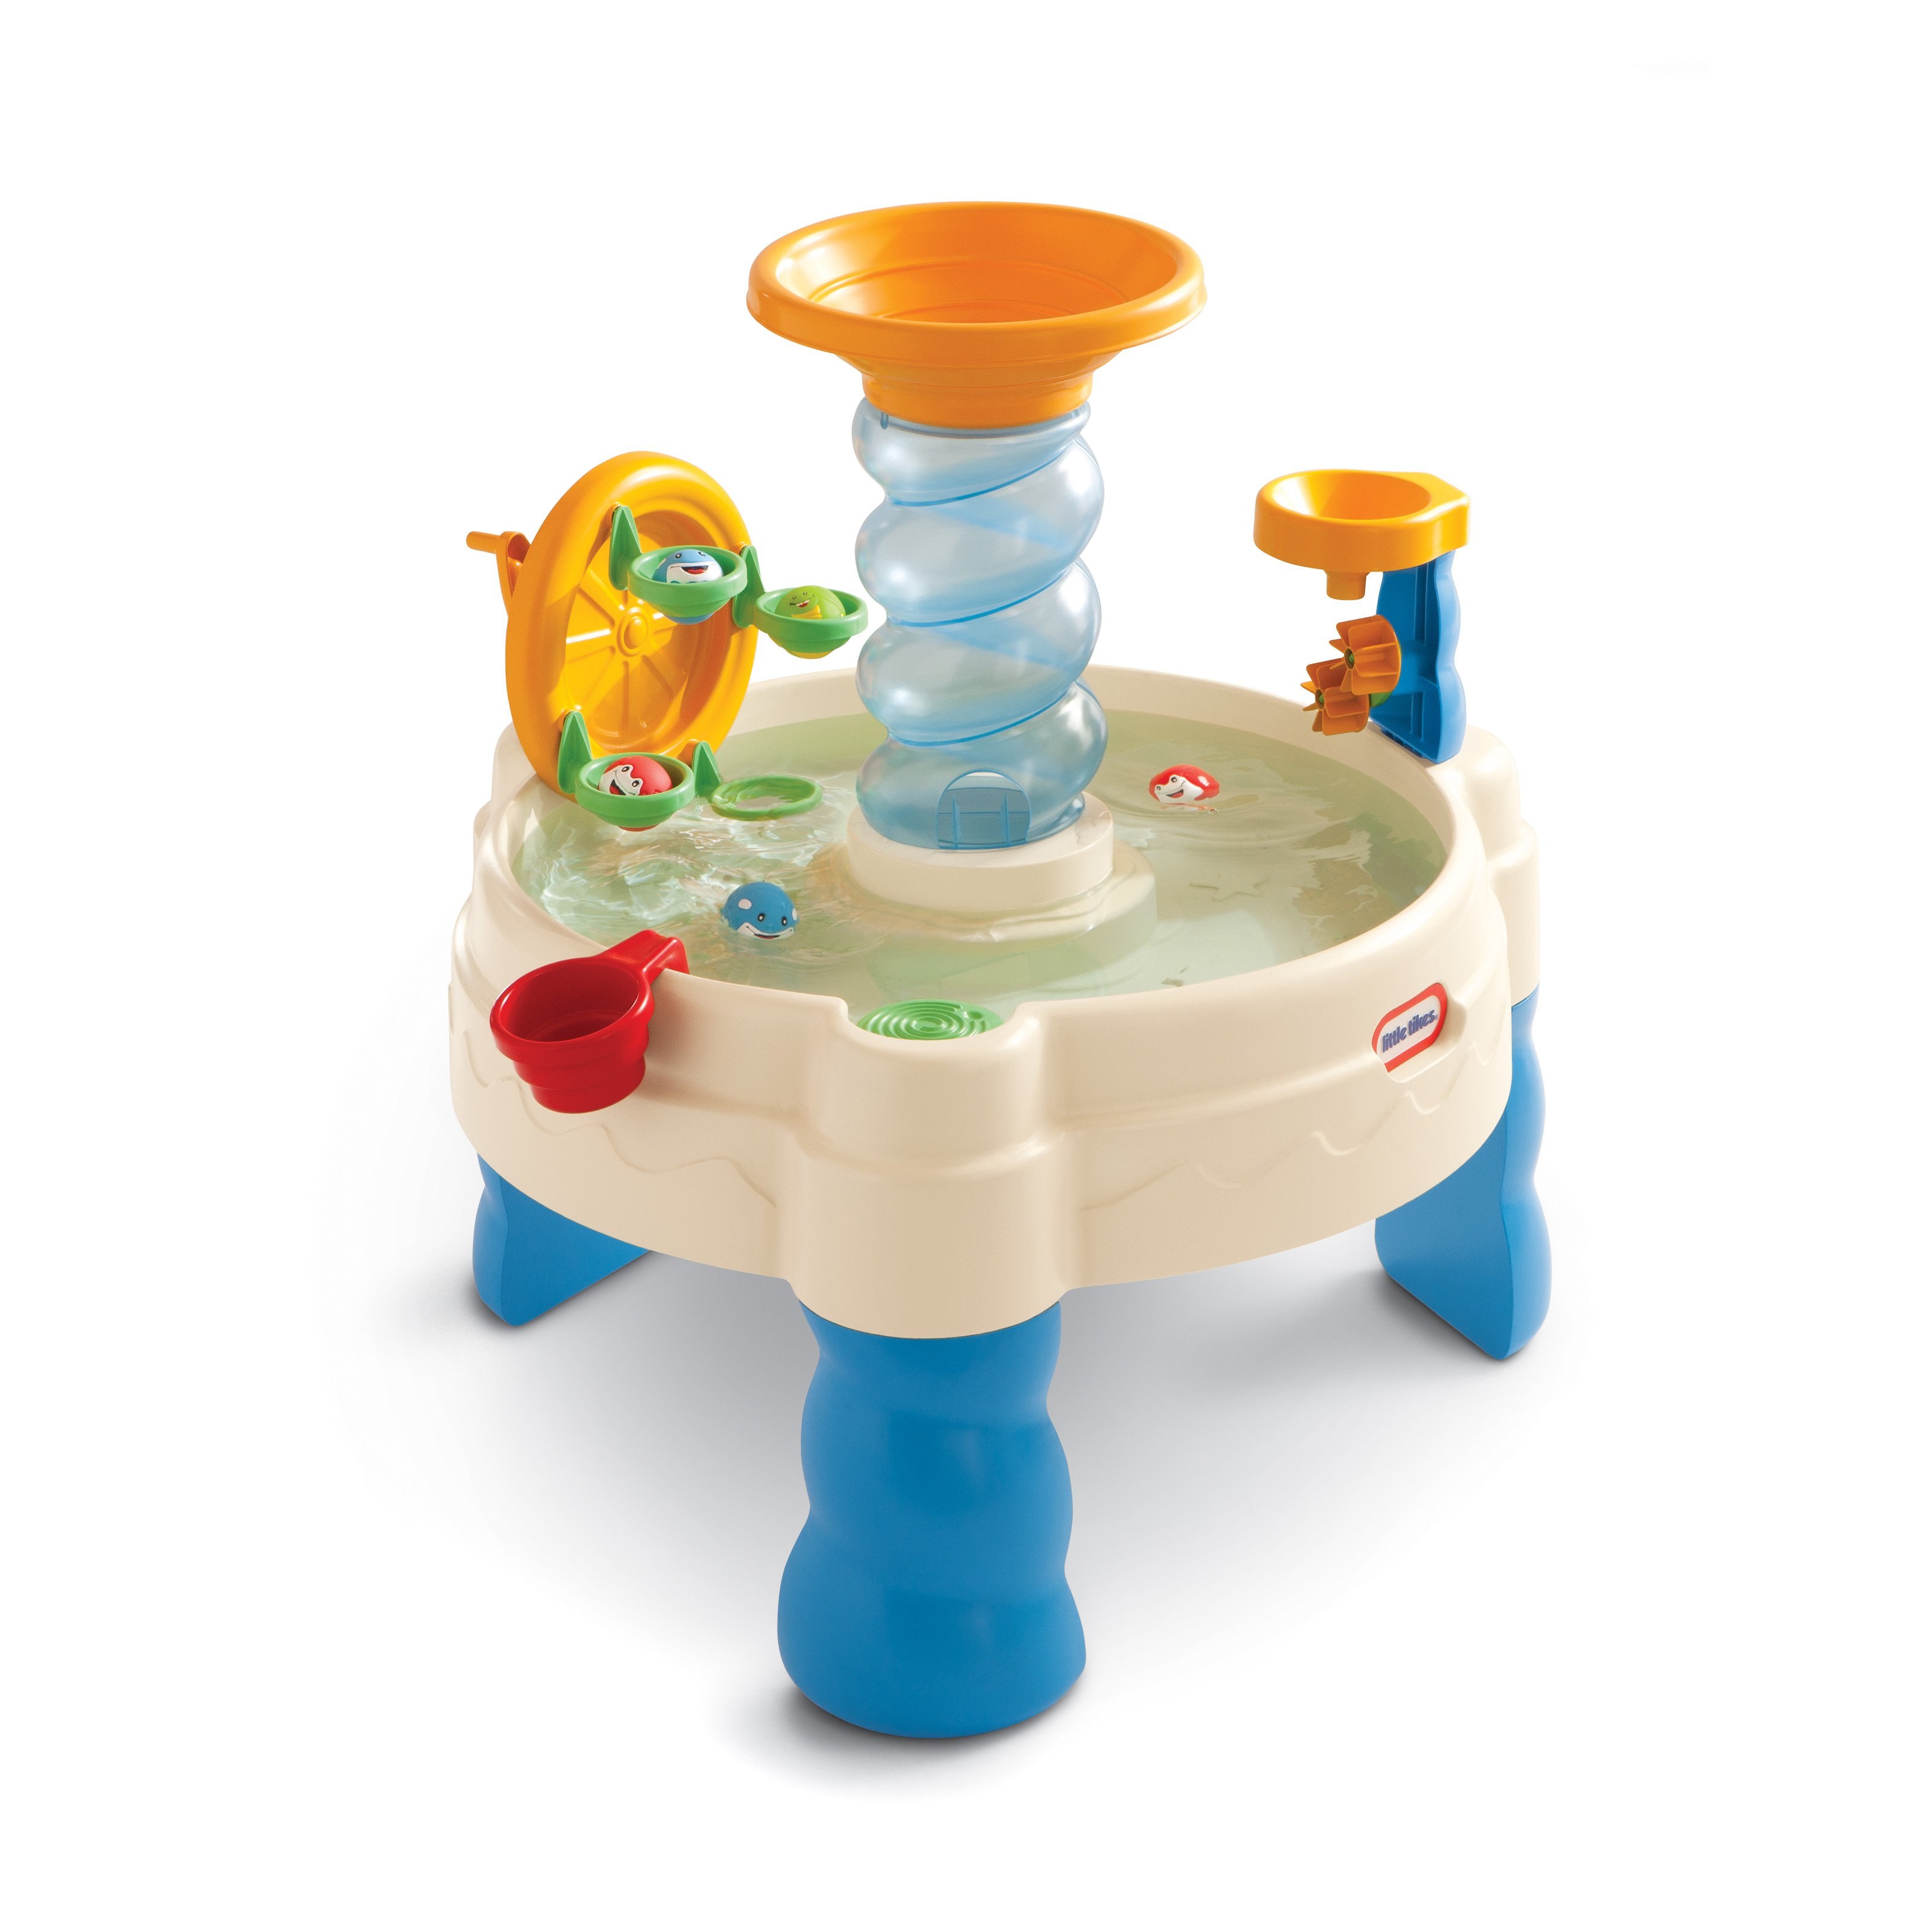 Little Tikes Spiralin' Seas Waterpark by Little Tikes